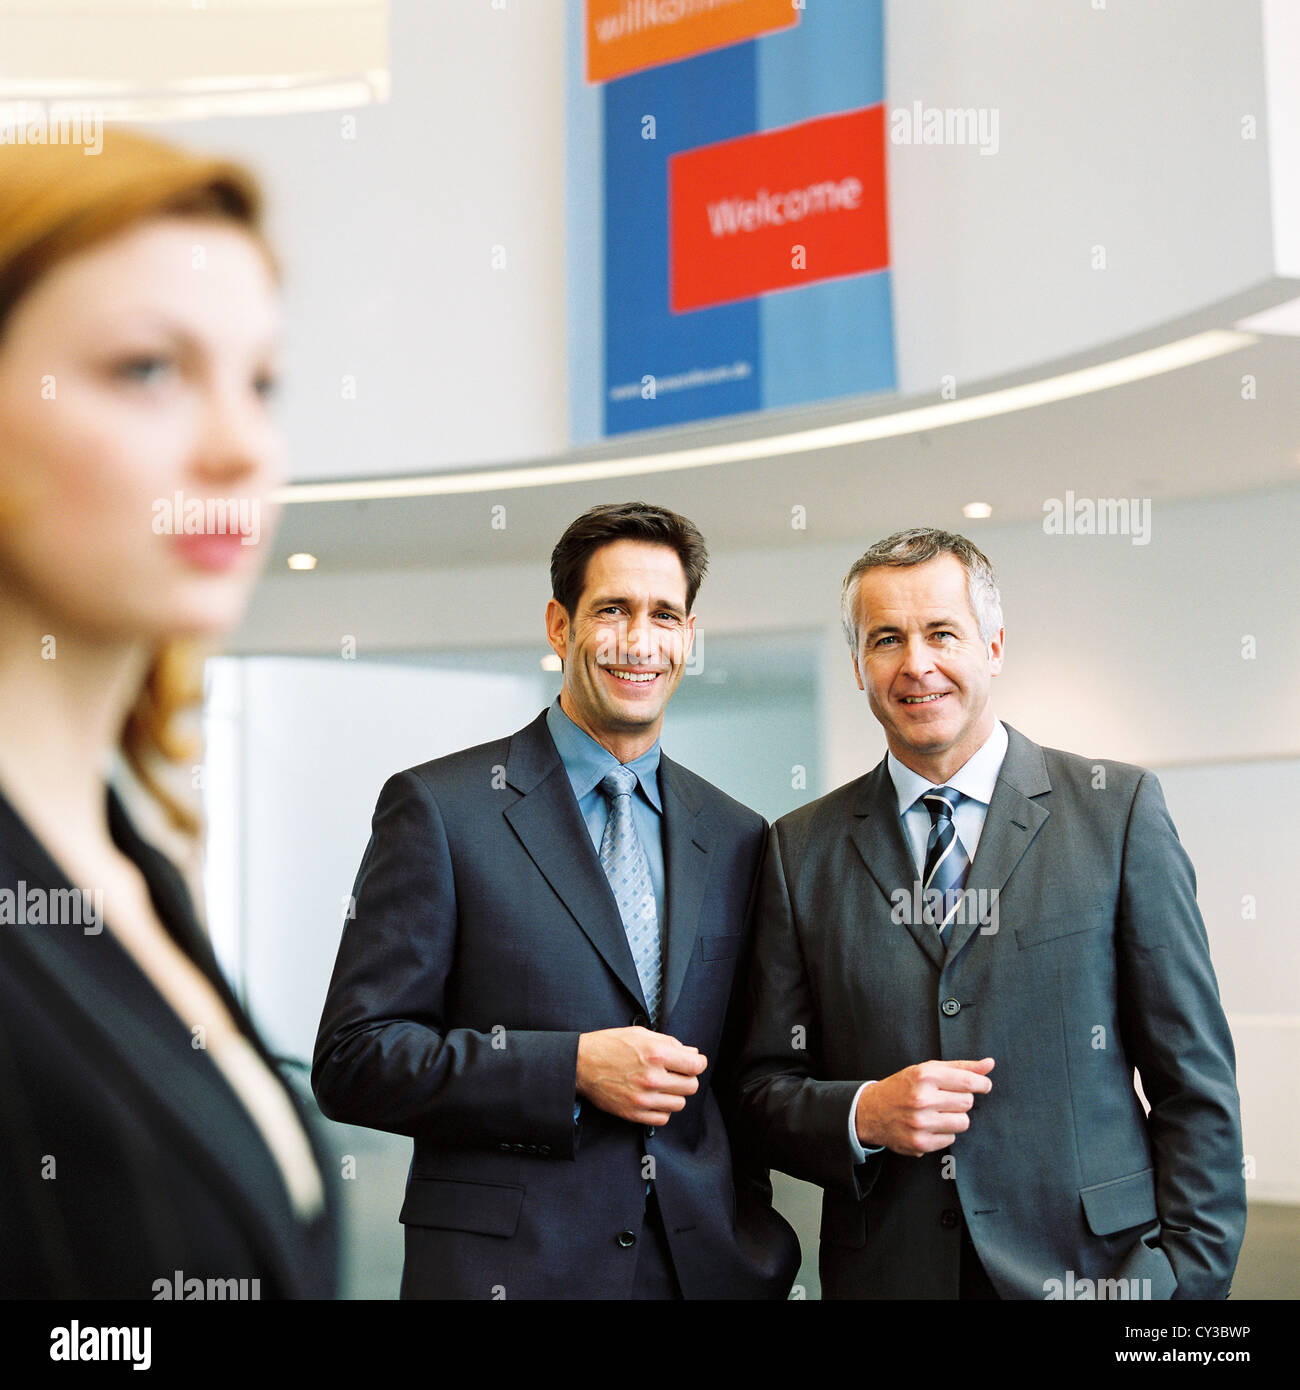 business people License free except ads and outdoor billboards Stock Photo